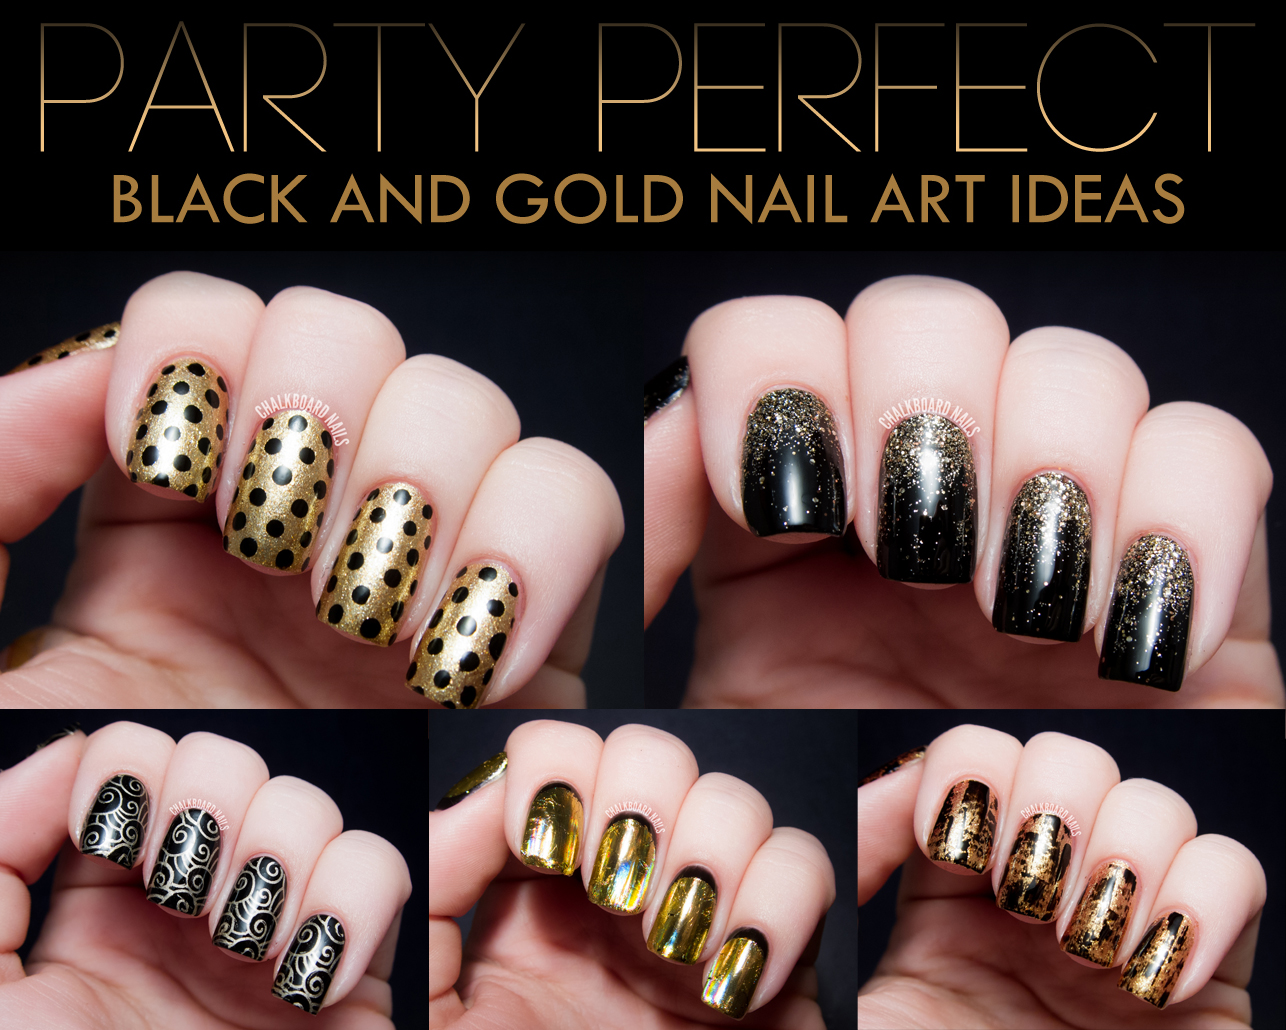 Nail Art Ideas I Have Been Wearing A Lot Of Black And Gold Manicures Lately Thought It Would Be The Perfect Opportunity To Highlight One My